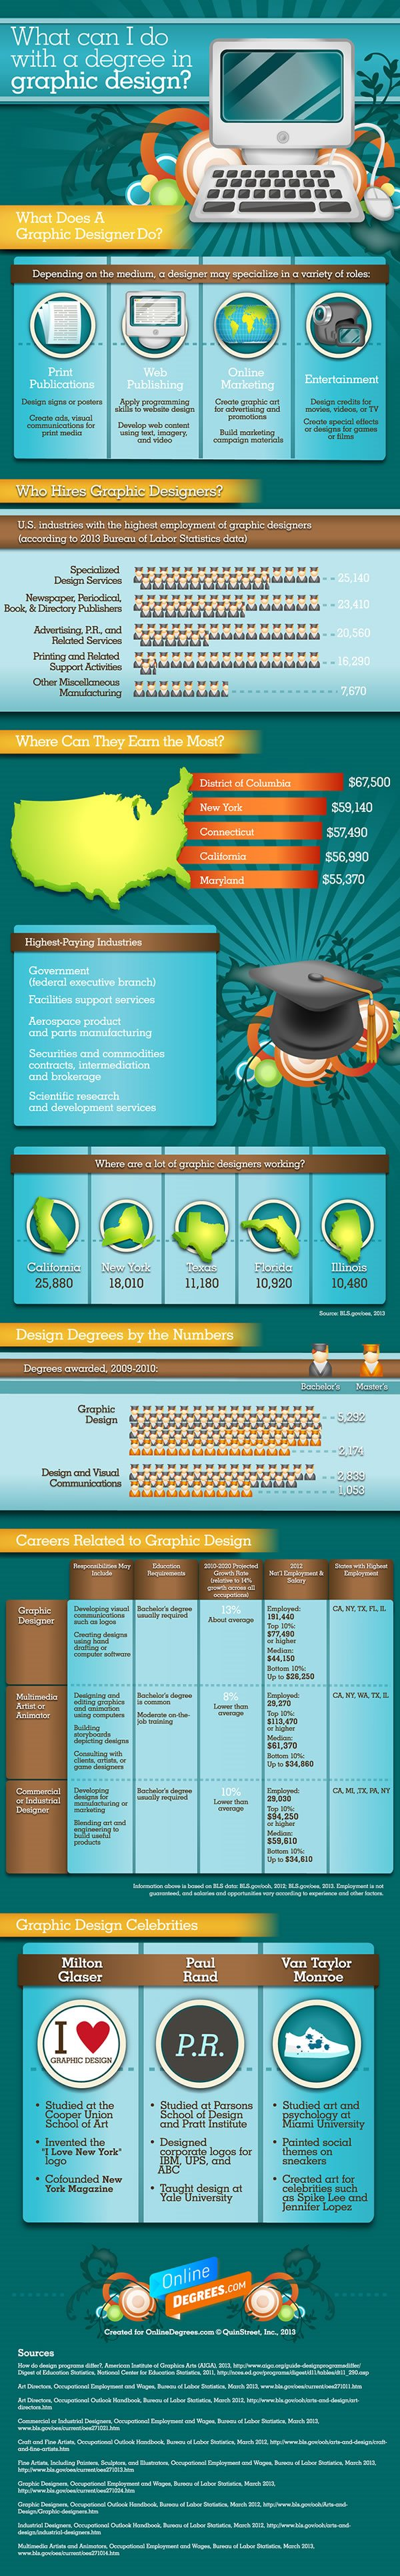 The 411 on Graphic Design Degrees [Infographic] Life